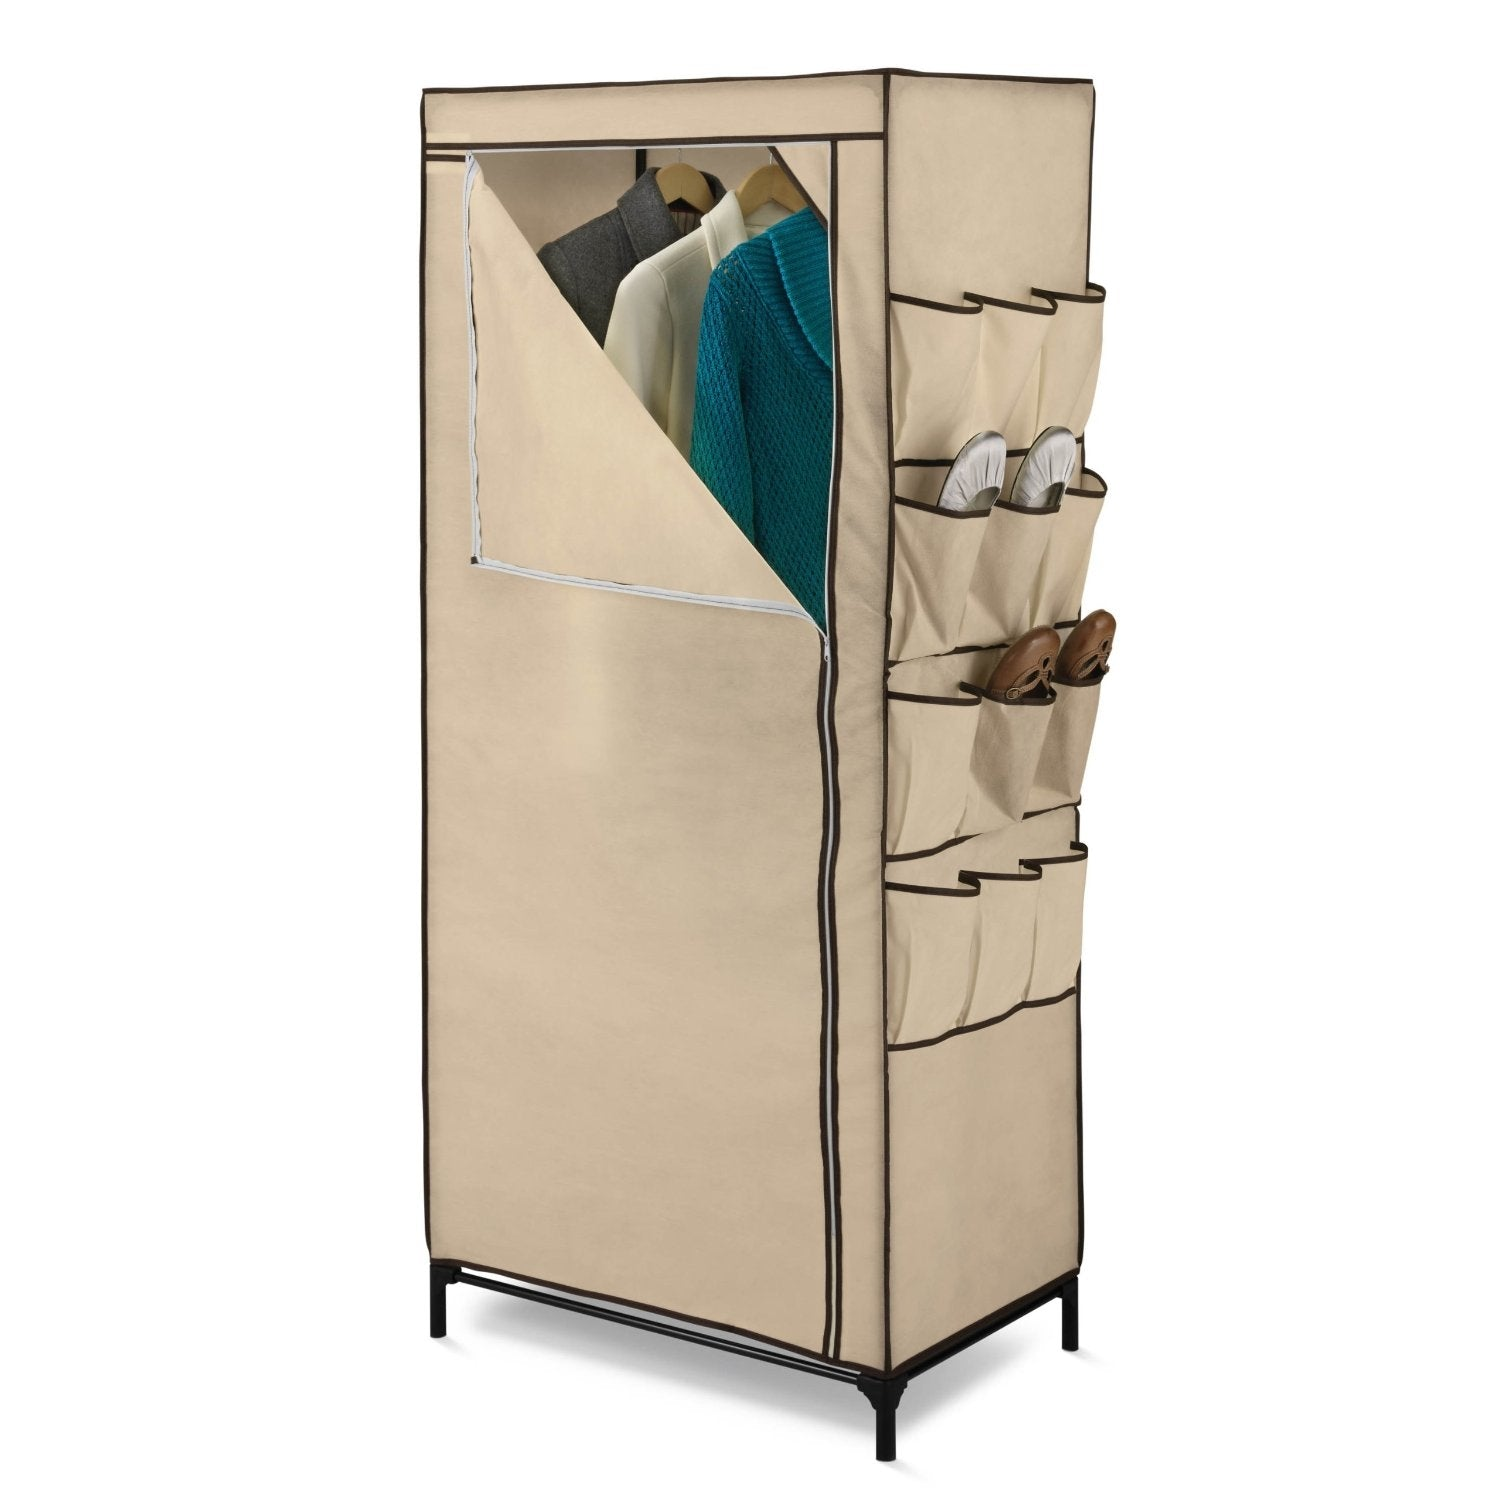 Tan 27-inch Portable Storage Closet Wardrobe with Shoe Organizer